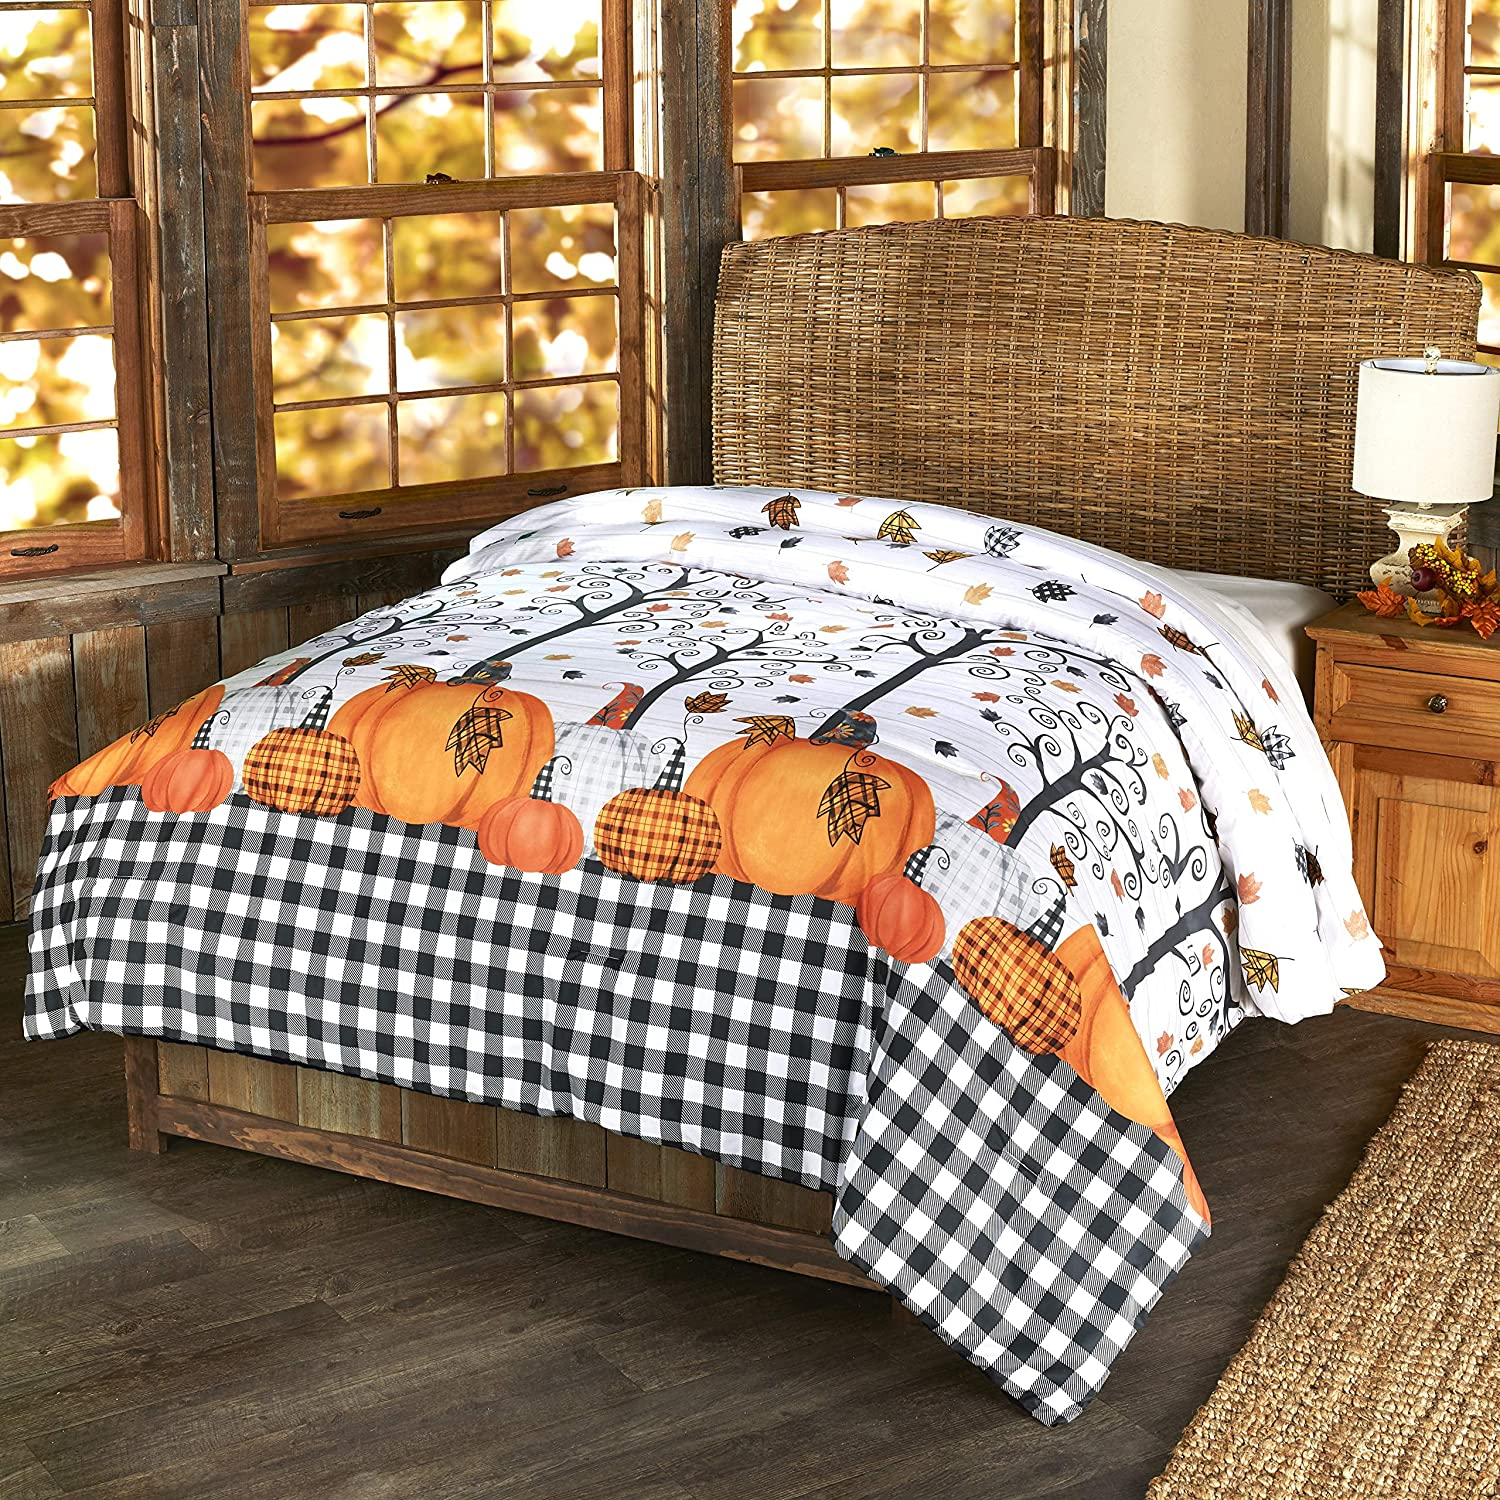 The Lakeside Collection Plaid Pumpkin Decorative Harvest Season Bed Comforter - Full/Queen